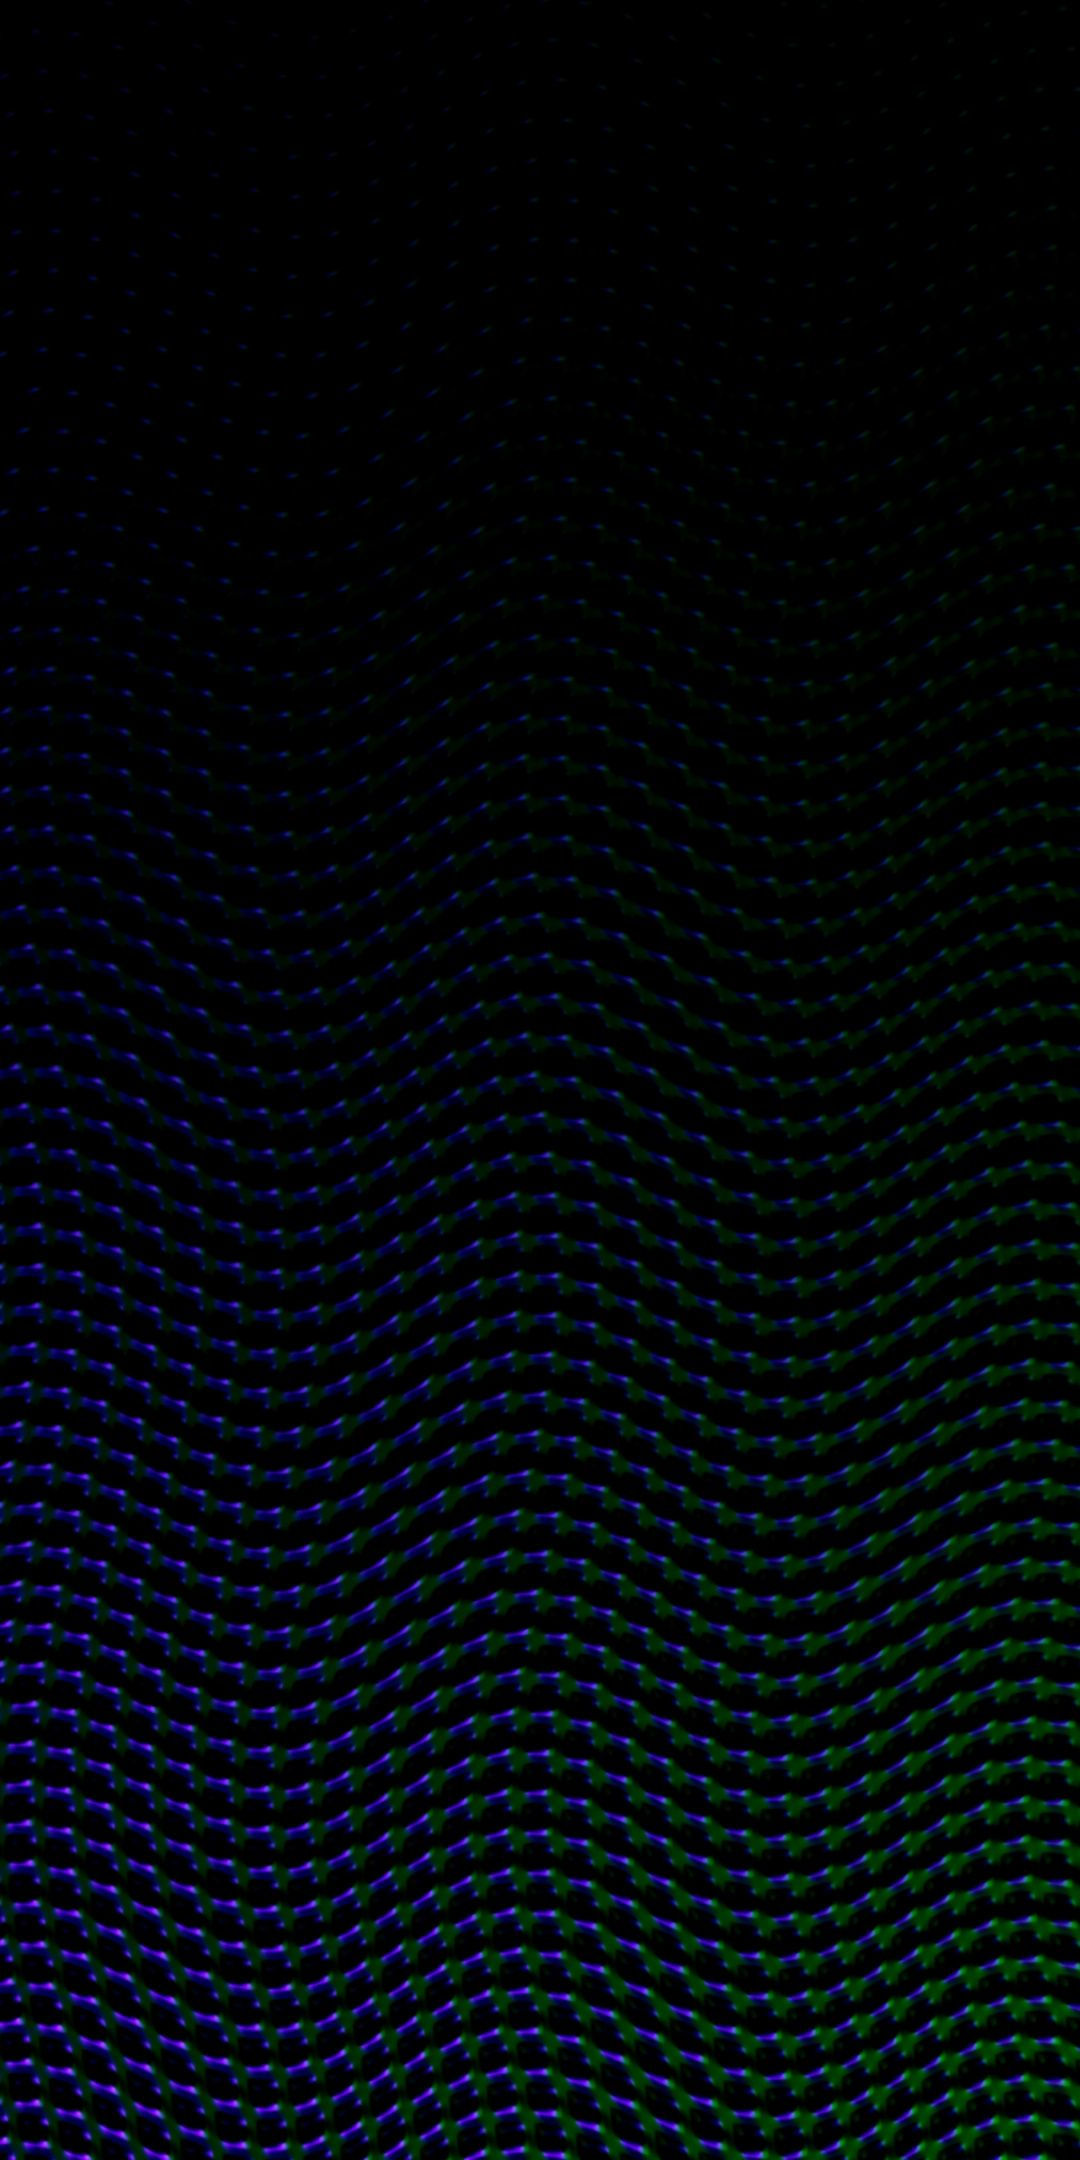 Wavy Relief Pattern Blue Dark 1080x2160 Wallpaper Cool Wallpapers For Phones Wallpaper Phone Wallpaper